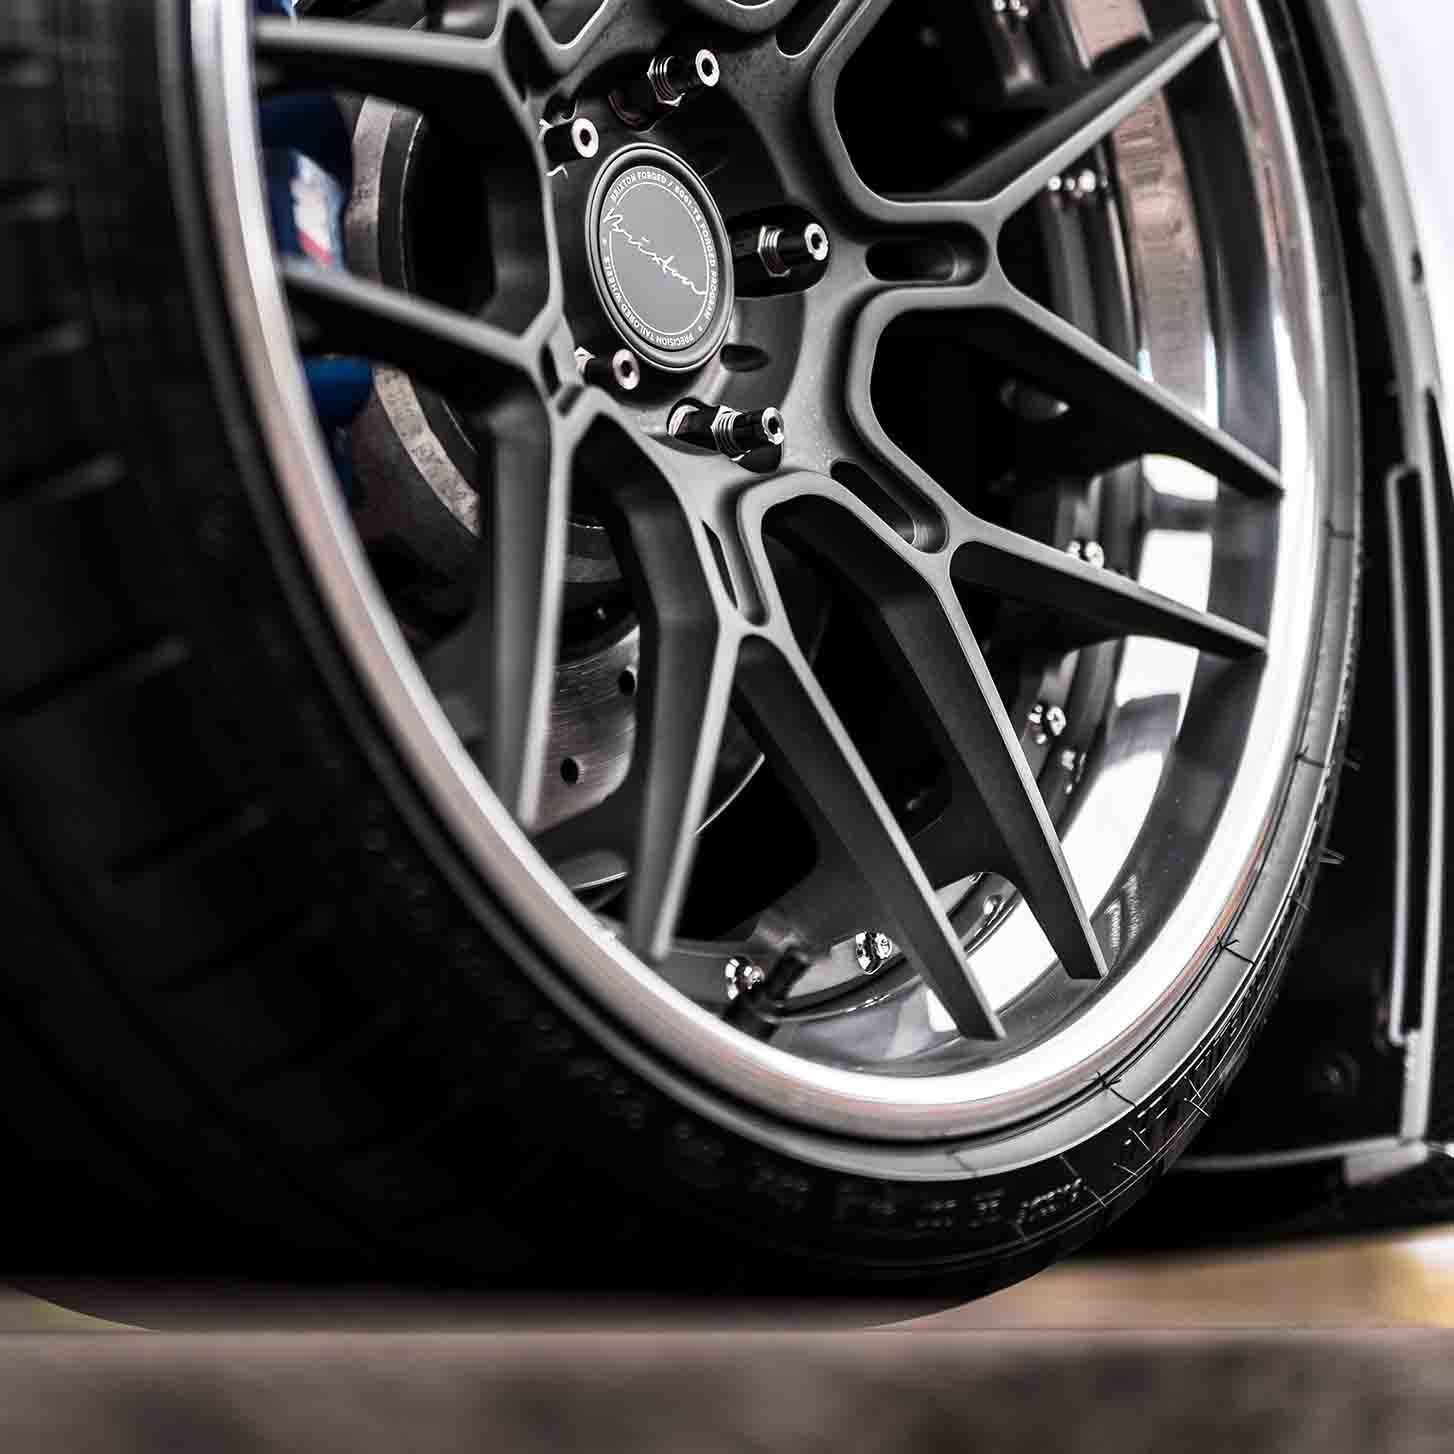 images-products-1-2638-232974926-fashion-grey-bmw-f80-m3-brixton-forged-cm8-targa-series-3-piece-concave-forged-wheels-20-brushed.jpg